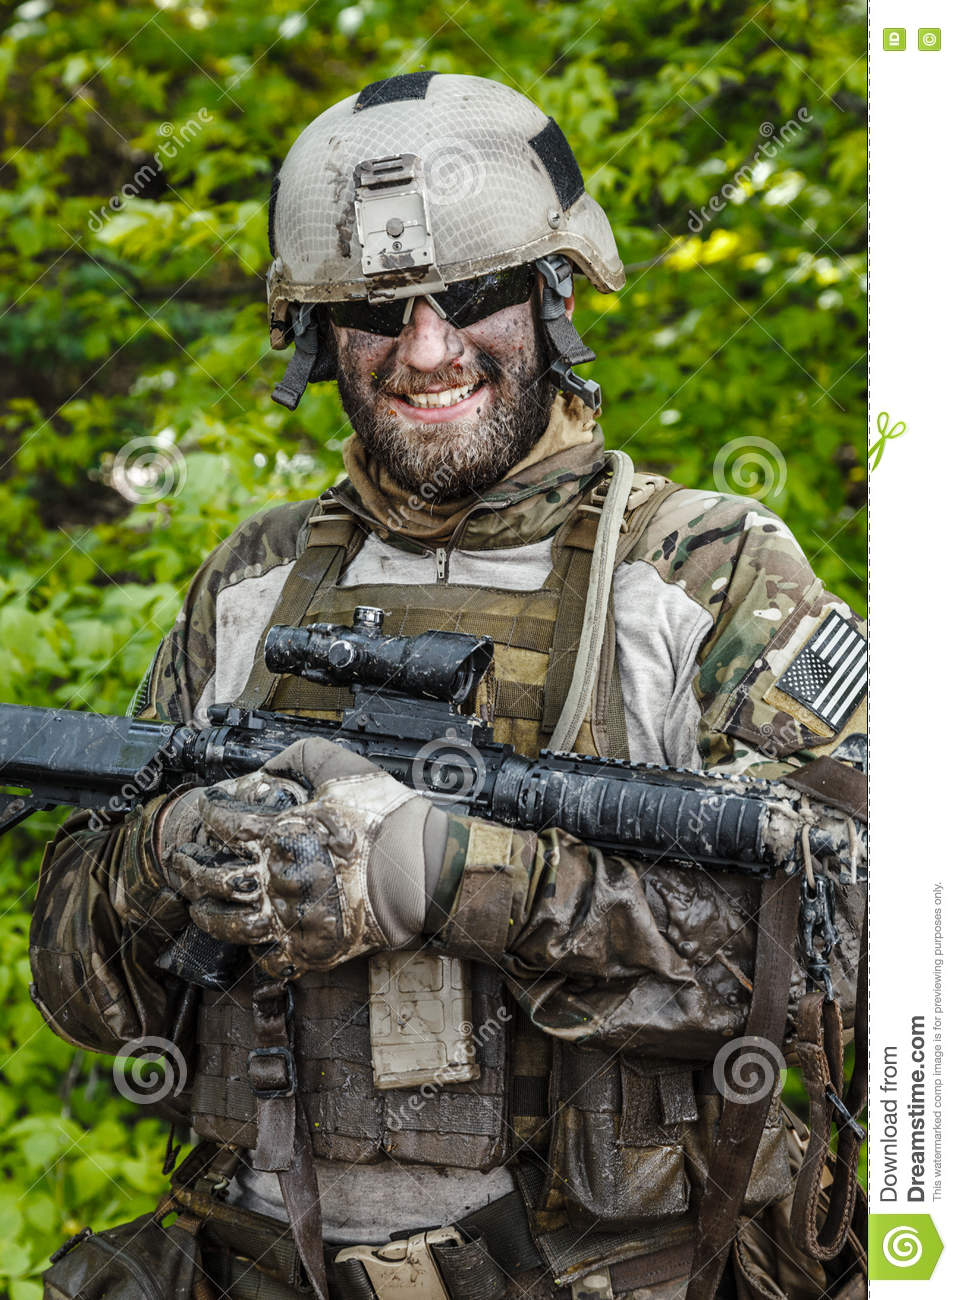 Green Beret In Action Stock Photo - Image: 75155971